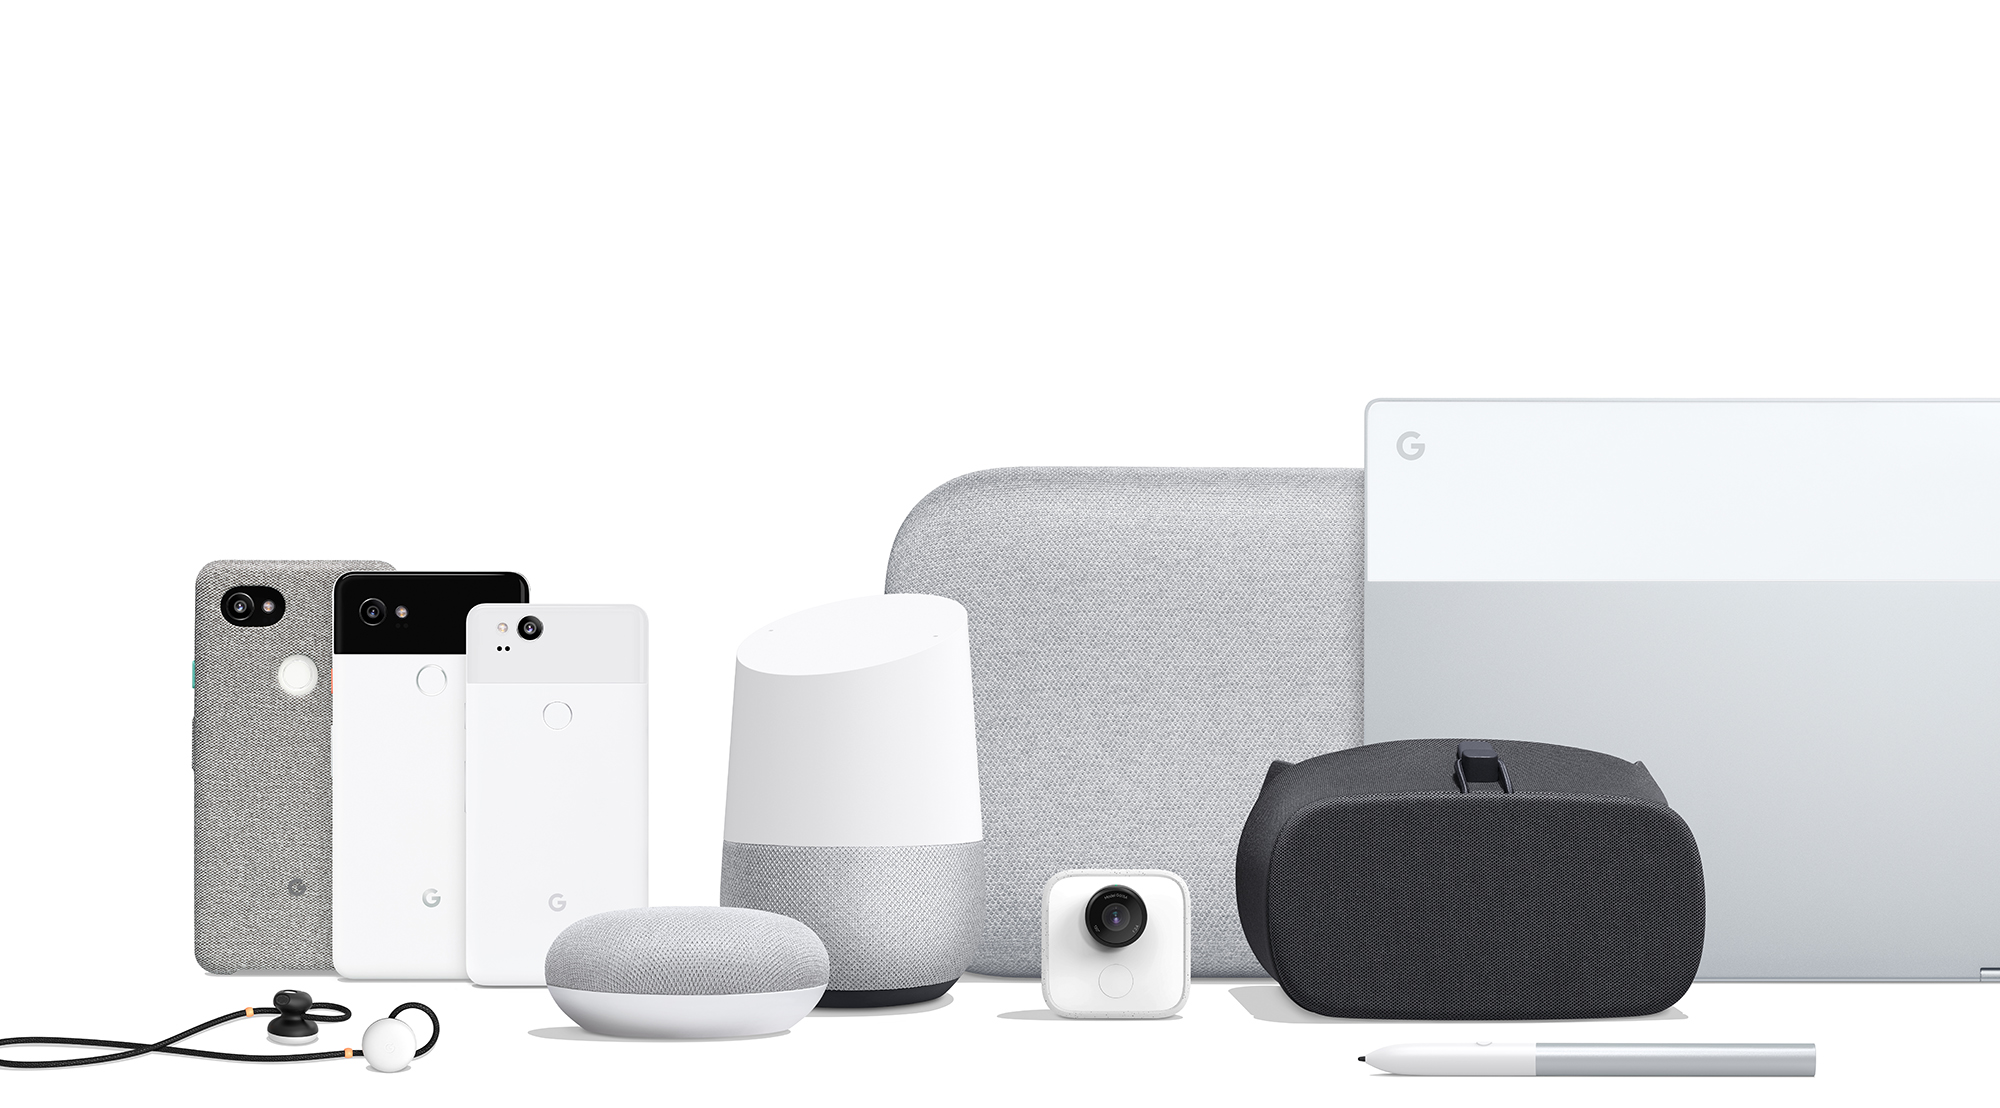 Industrial Design: Introducing a few new things made by Google